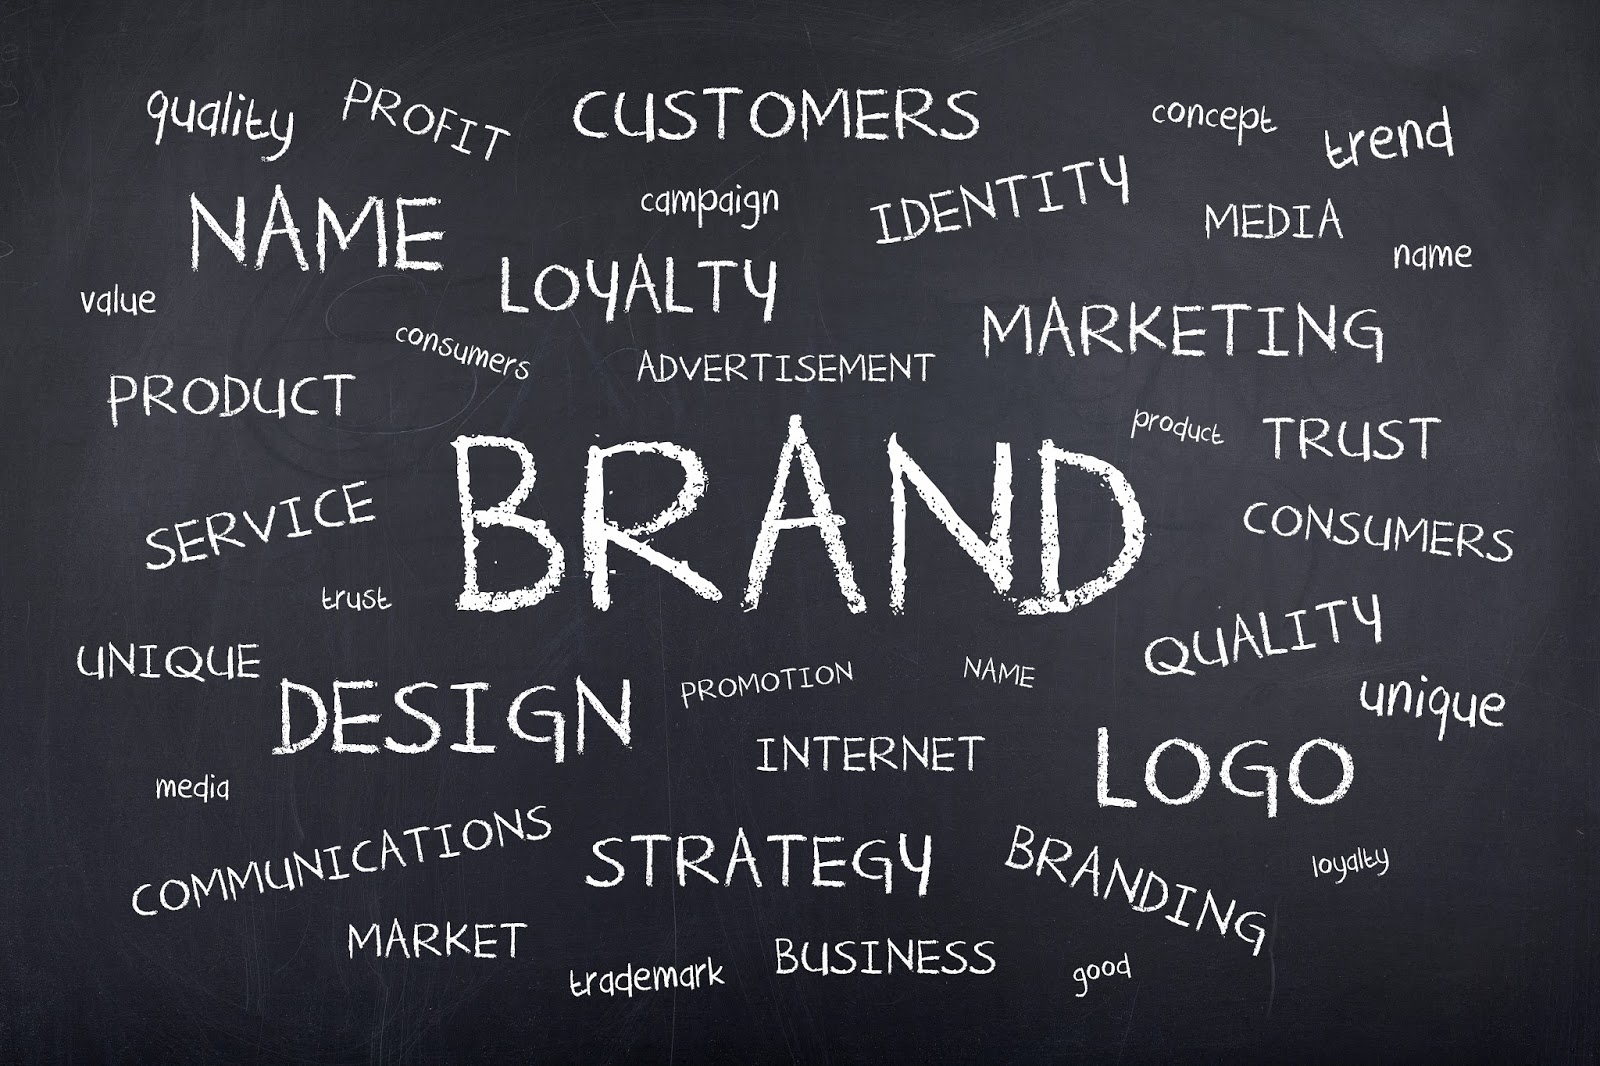 4_Important_Branding_Assets_in_Marketing_Your_Business.jpg